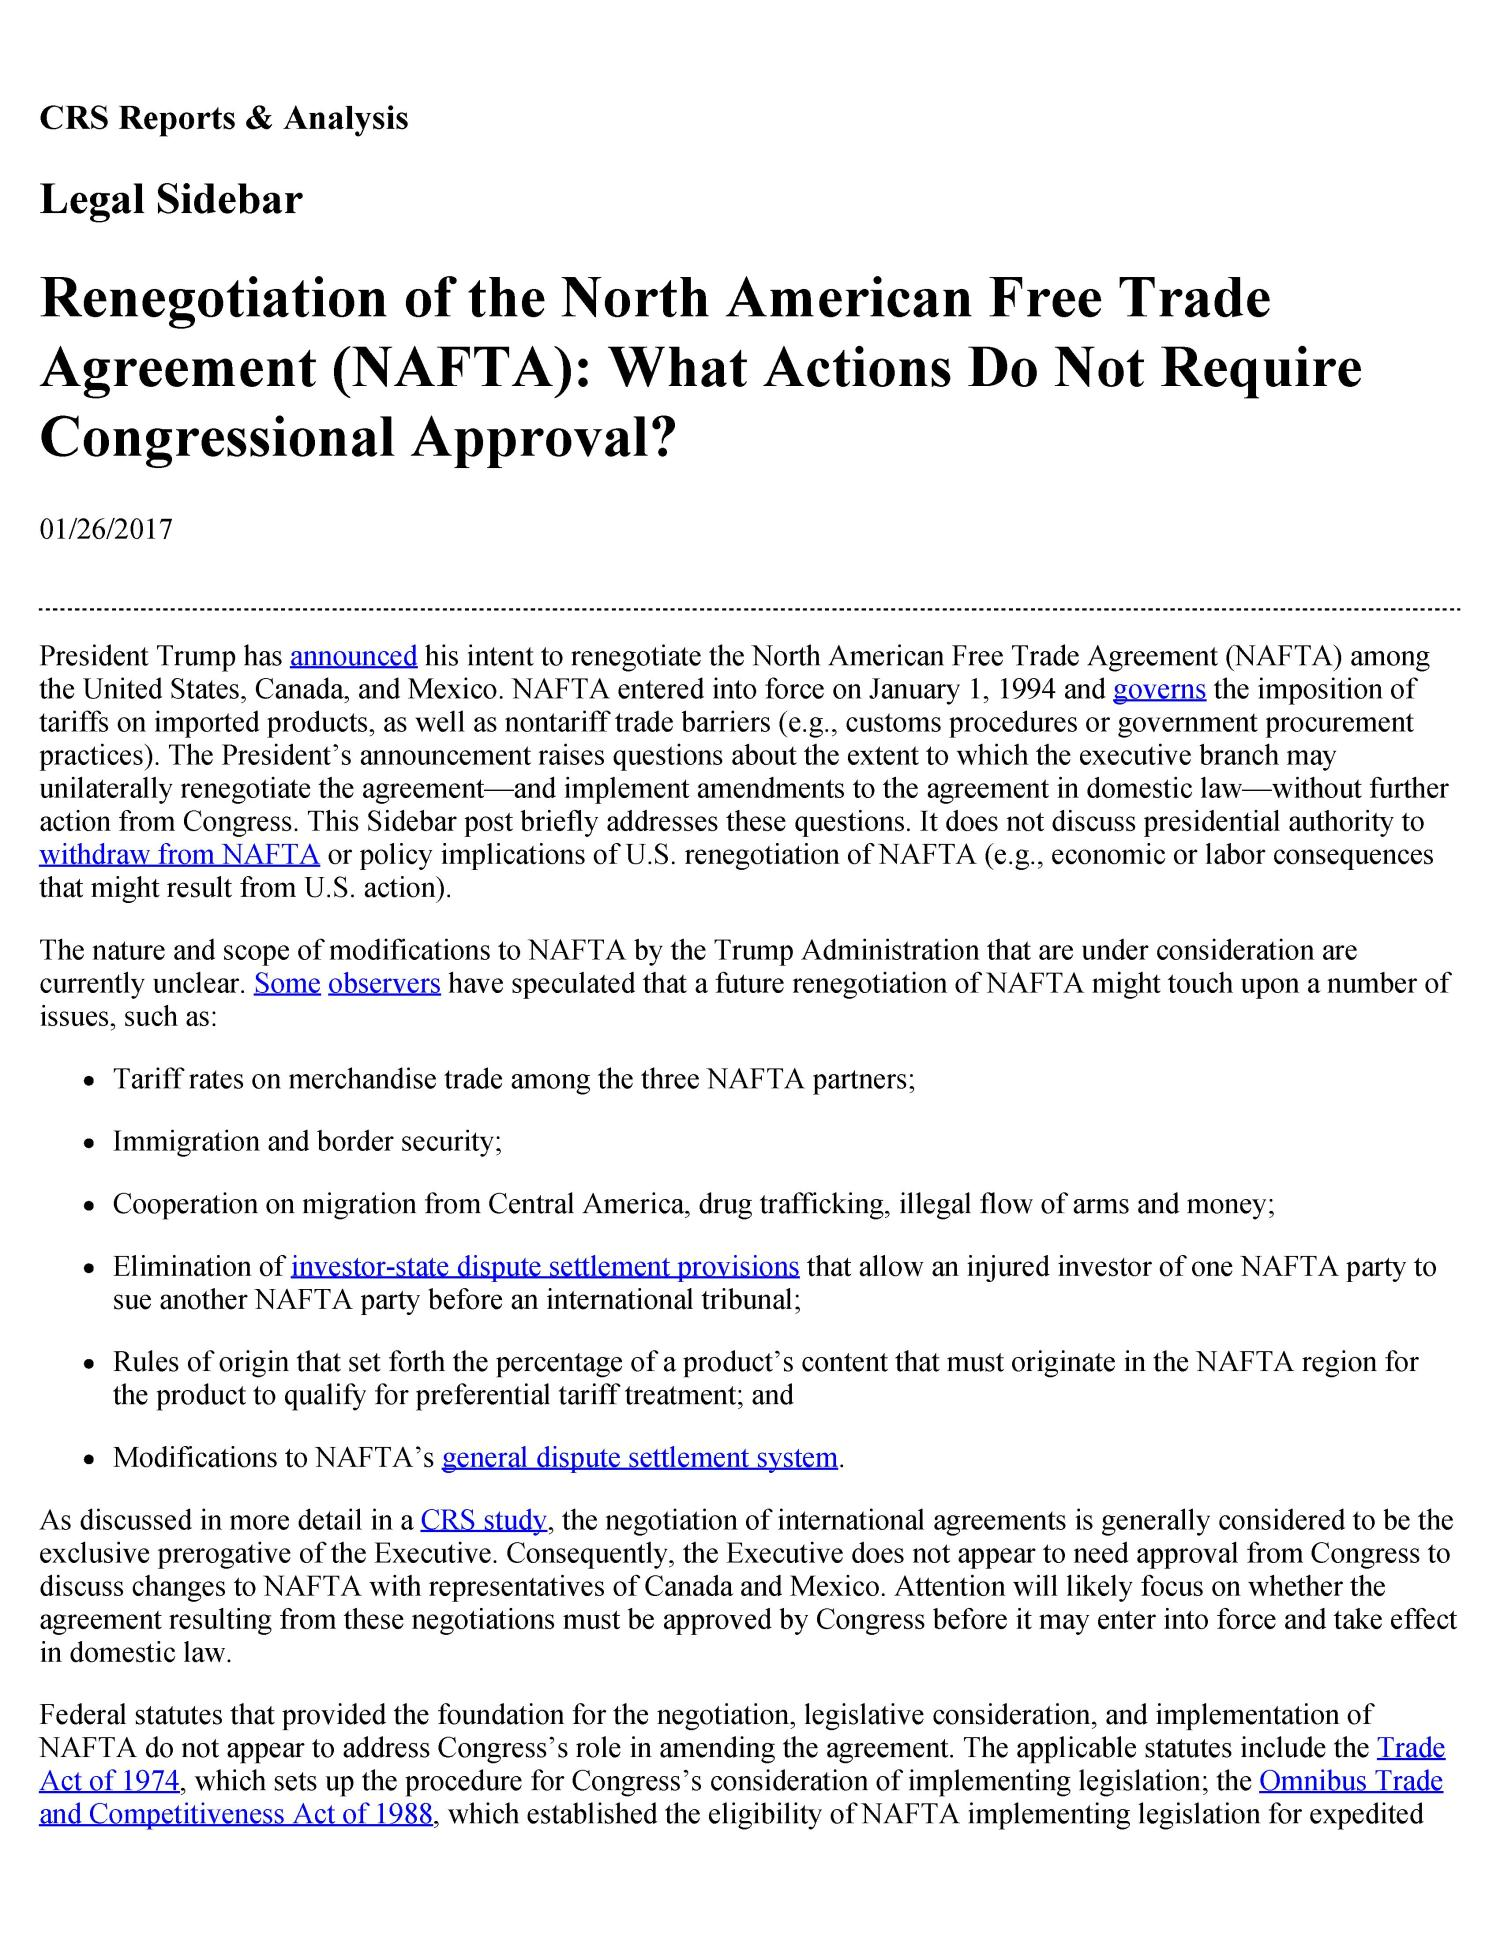 Renegotiation Of The North American Free Trade Agreement Nafta